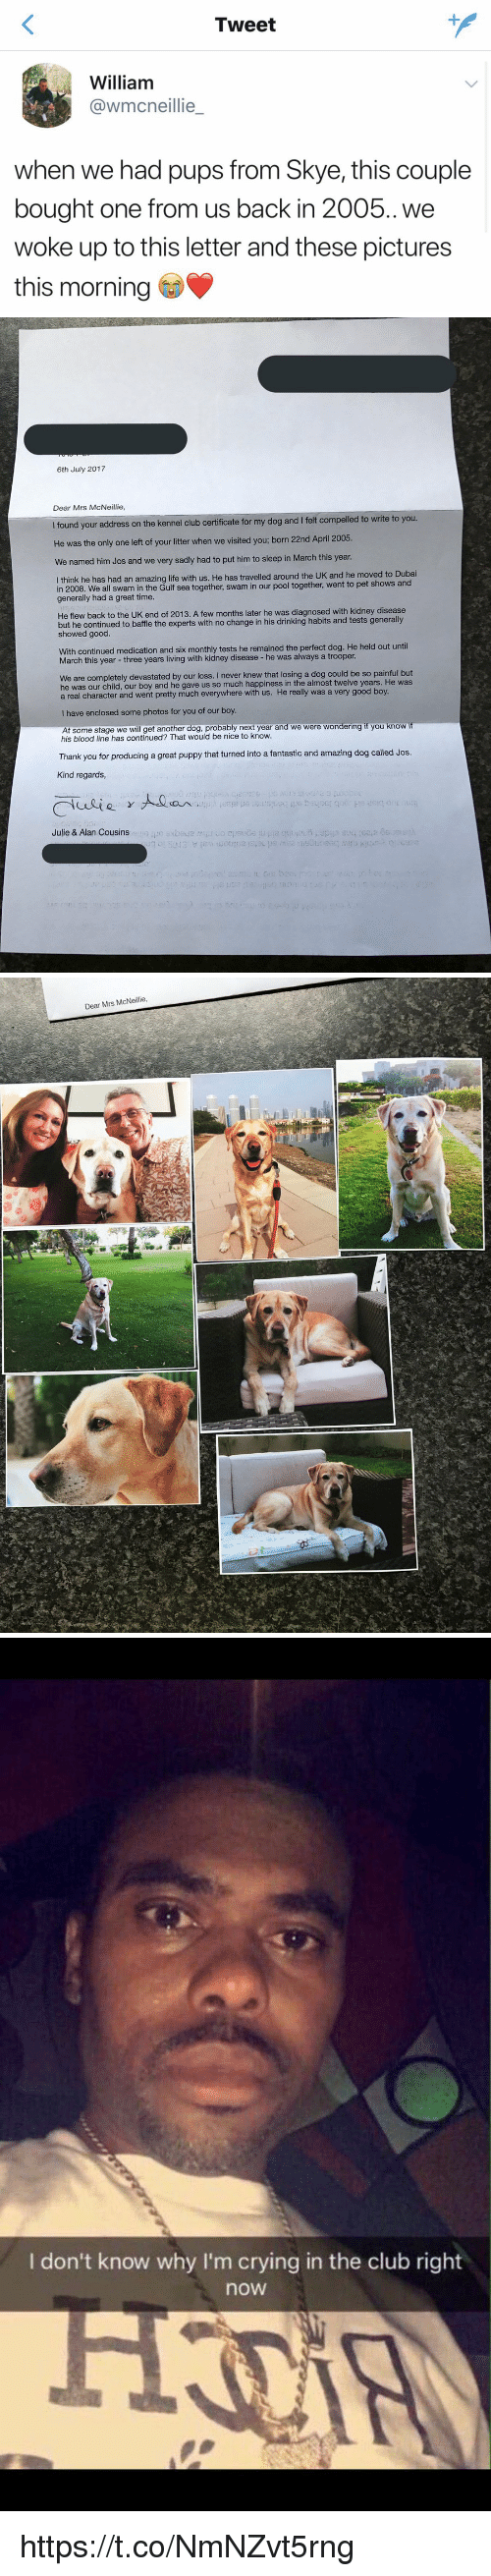 Bloods, Club, and Crying: Tweet  William  @wmcneillie  when we had pups from Skye, this couple  bought one from us back in 2005. we  woke up to this letter and these pictures  this morning   6th July 2017  Dear Mrs McNeillie  e kennel club certificate for my dog and I felt compelled to write to you.  He was the only one left of your litter when we visited you; born 22nd April 2005.  We named him Jos and we very sadly had to put him to sleep in March this year  think he has had an amazing life with us. He has travelled around the UK and he moved to Dubai  in 2008. We all swam in the Gulf sea together, swam in our pool  generally had a great time.  I together, went to pet shows and  He flew back to the UK end of 2013. A few months later he was diagnosed with kidney disease  but he continued to baffle the experts with no change in his drinking habits and tests generally  showed good.  With continued medication and six monthly tests he remained the perfect dog. He held out until  March this year - three years living with kidney disease - he was always a trooper.  We are completely devastated by our loss. I never knew that losing a dog could be so painful but  he was our child, our boy and he gave us so much happiness in the almost twelve years. He was  a real character and went pretty much everywhere with us. He really was a very good boy.  I have enclosed some photos for you of our boy  At some stage we will get another dog, probably next year and we were wondering if you know  his blood line has continued? That would be nice to know  Thank you for producing a great puppy that turned into a fantastic and amazing dog called Jos  Kind regards,  Julie & Alan Cousins   Dear Mrs McNeillie   I don't know why I'm crying in the club right  now https://t.co/NmNZvt5rng